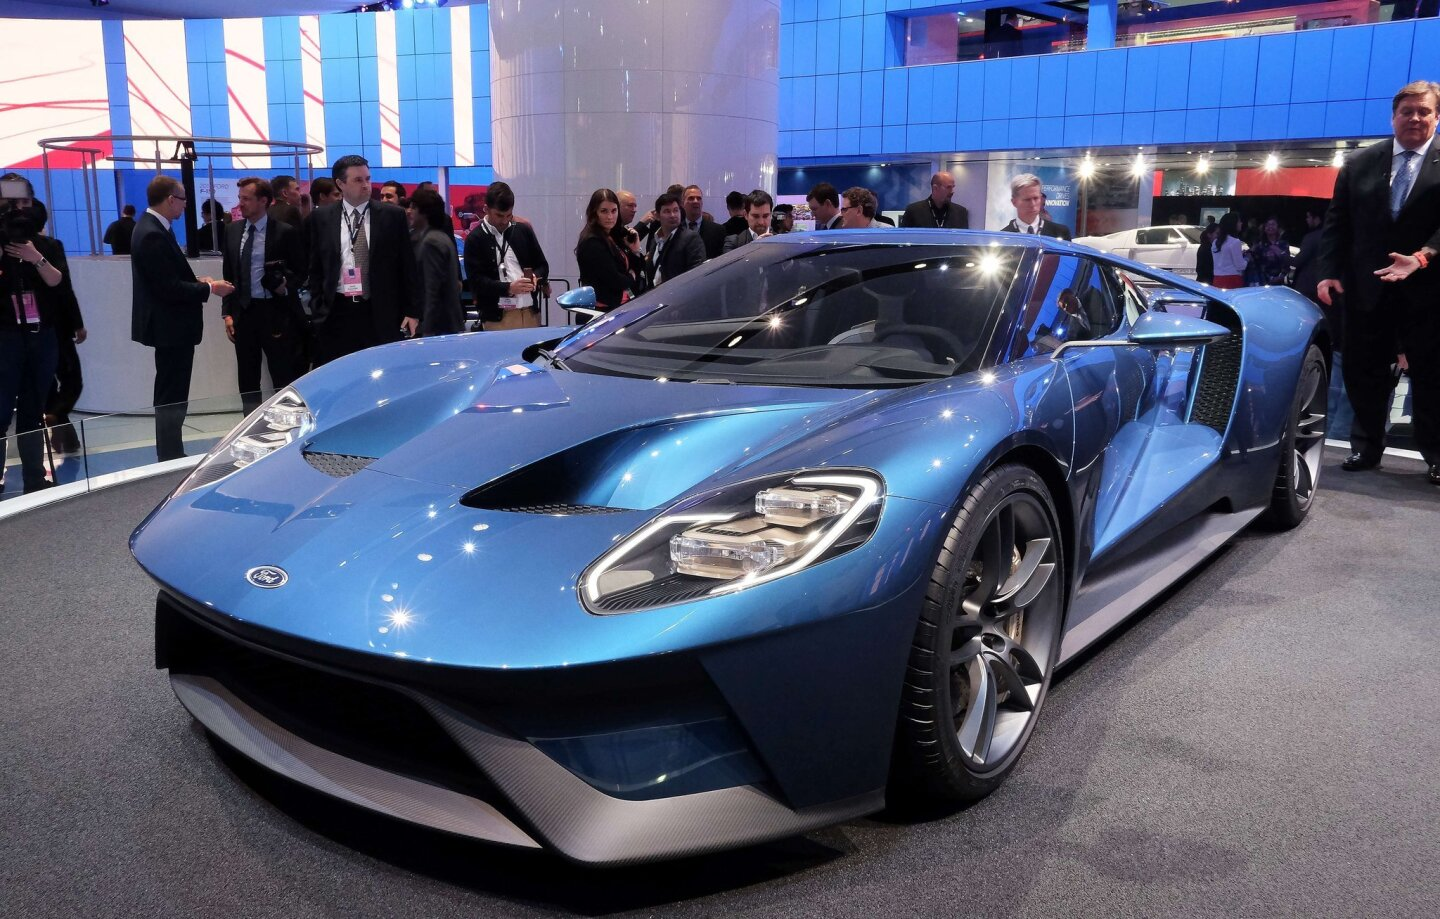 The new Ford GT is pictured at the Detroit Auto Show. Headed to production in 2016, the features a carbon fiber passenger cell and body panels, and a 3.5-liter twin-turbocharged V-6 engine that makes more than 600 horsepower.